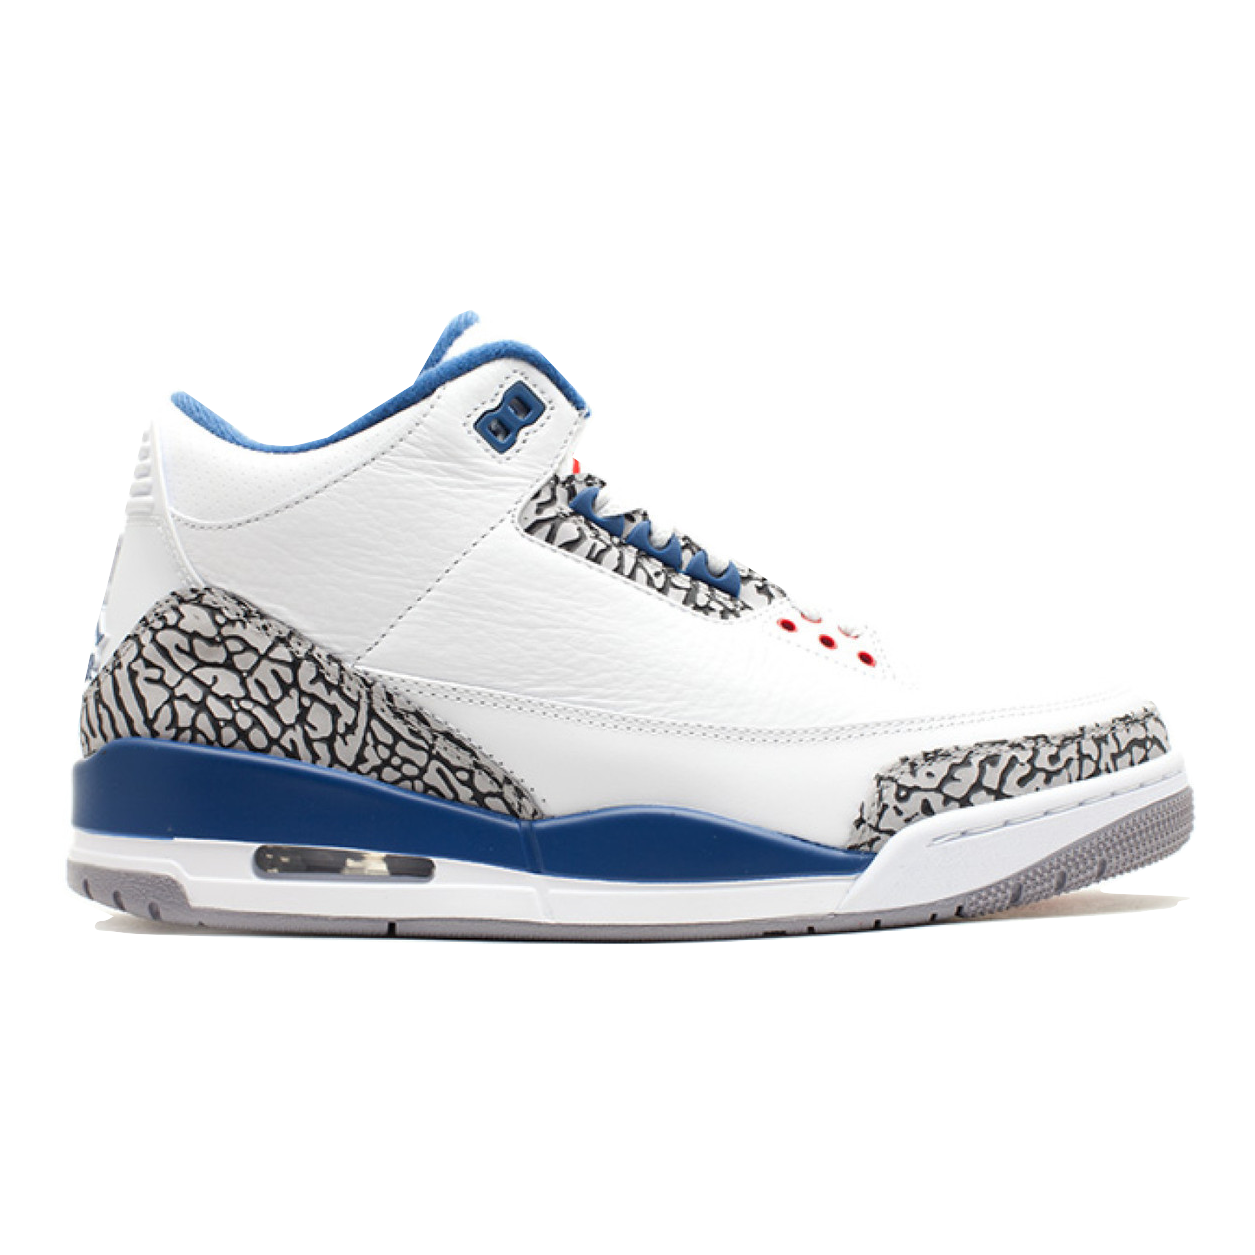 Air Jordan 3 Retro - True Blue (2011)